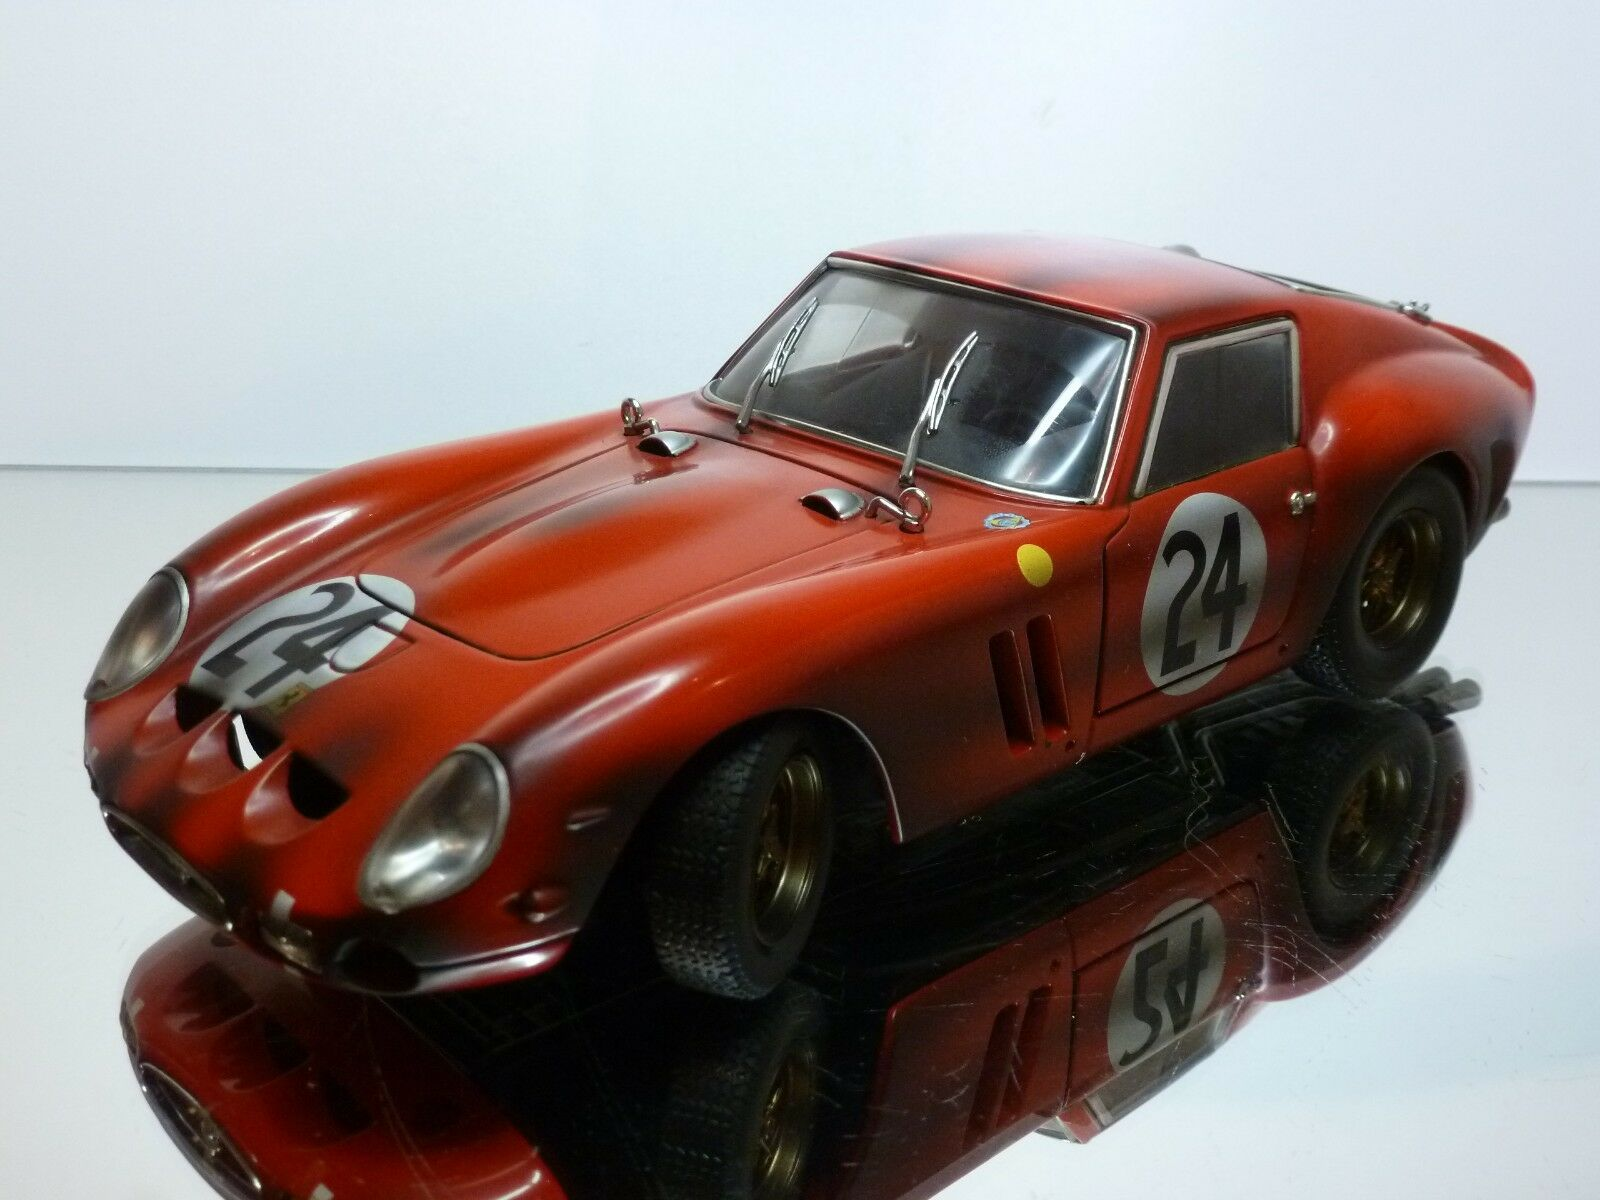 HOT WHEELS FERRARI 250 GTO - RALLY  24 - rouge 1 18 - VERY GOOD CONDITION